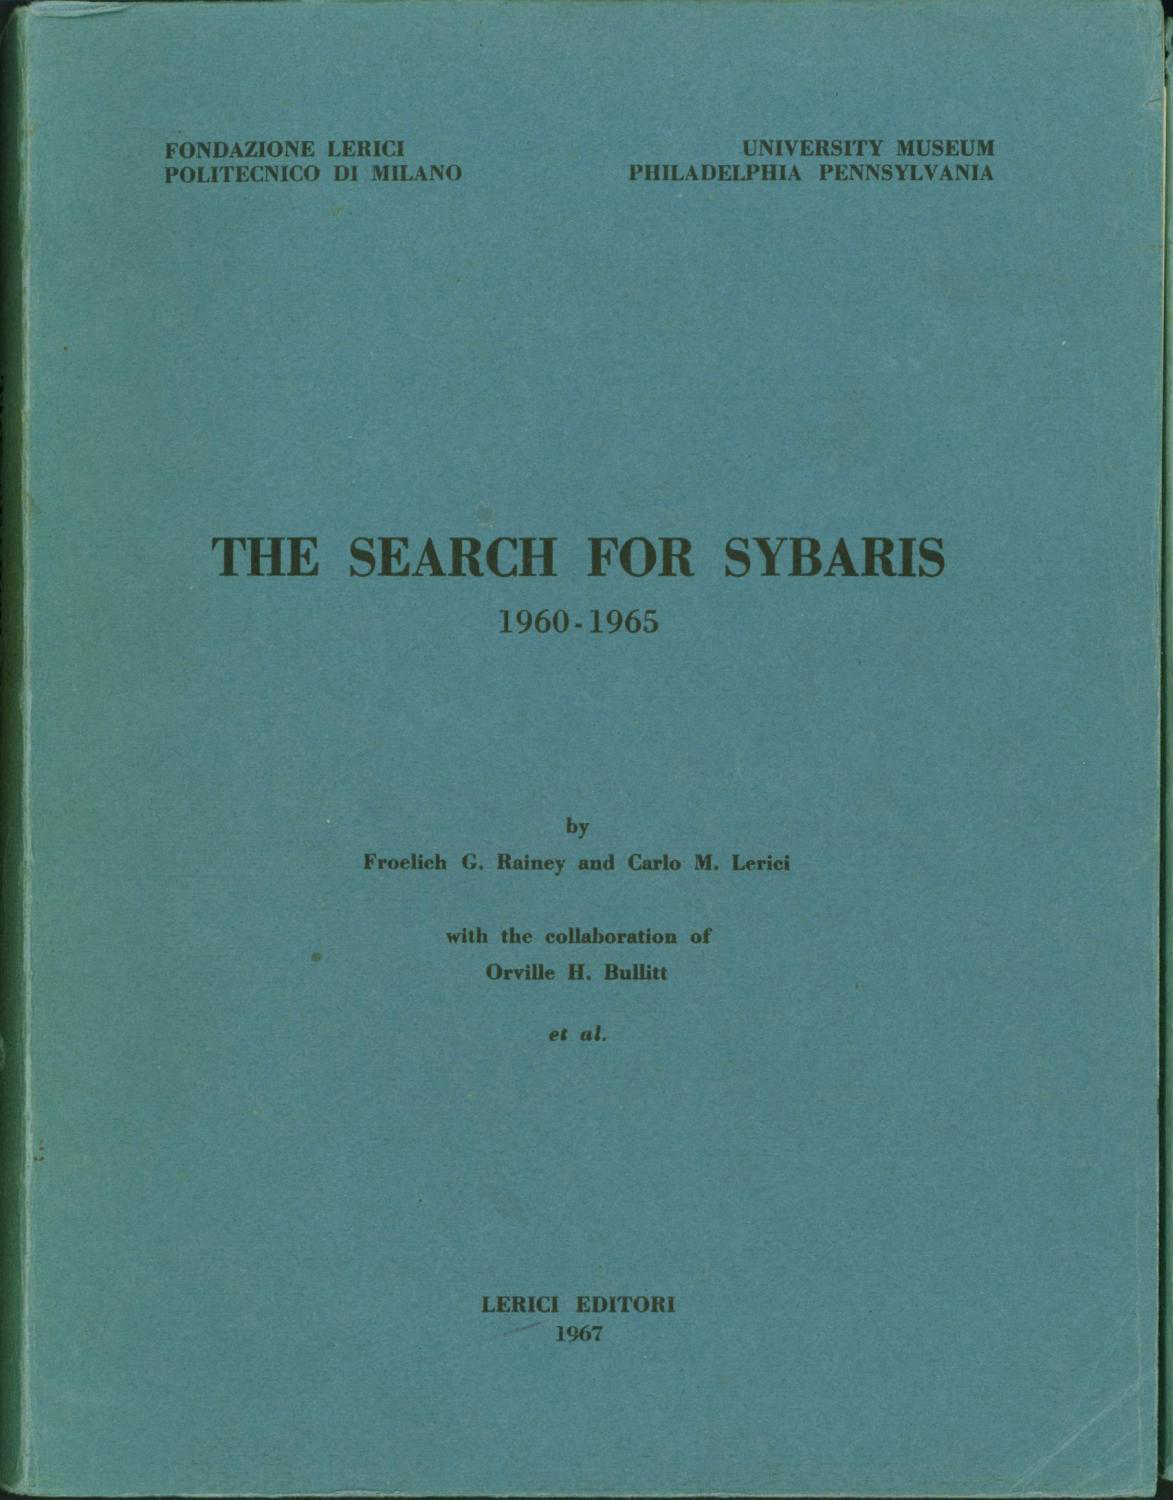 The Search for Sybaris, 1960-1965